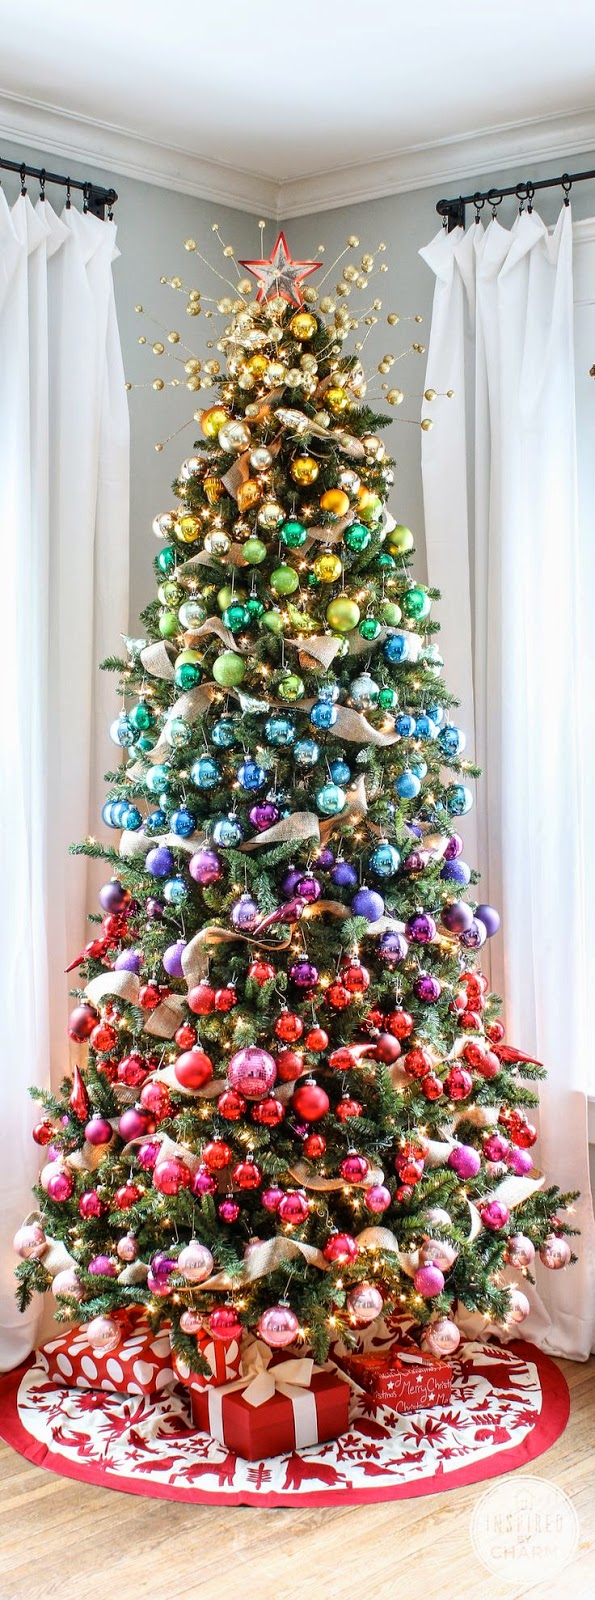 ♥ ♫ ♥ A Colorful Christmas Tree ♥ ♫ ♥